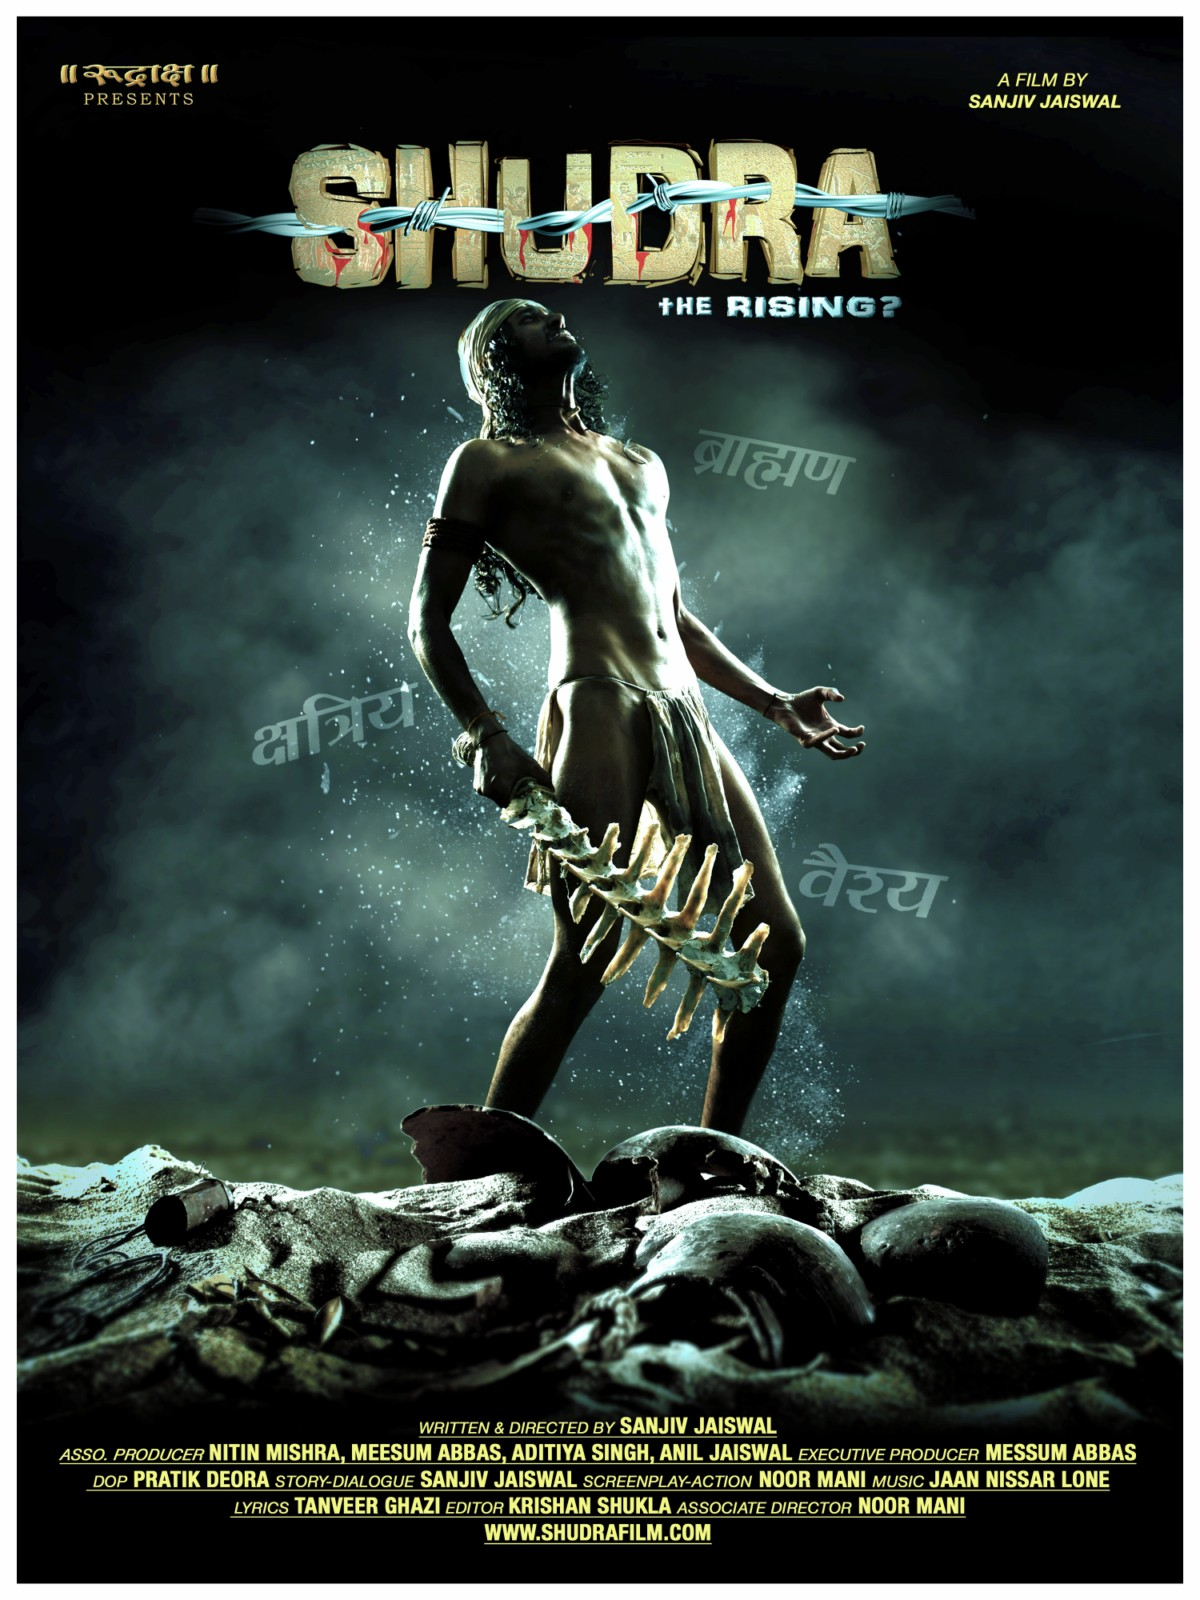 Shudra The Rising - Movie Poster #1 (Original)